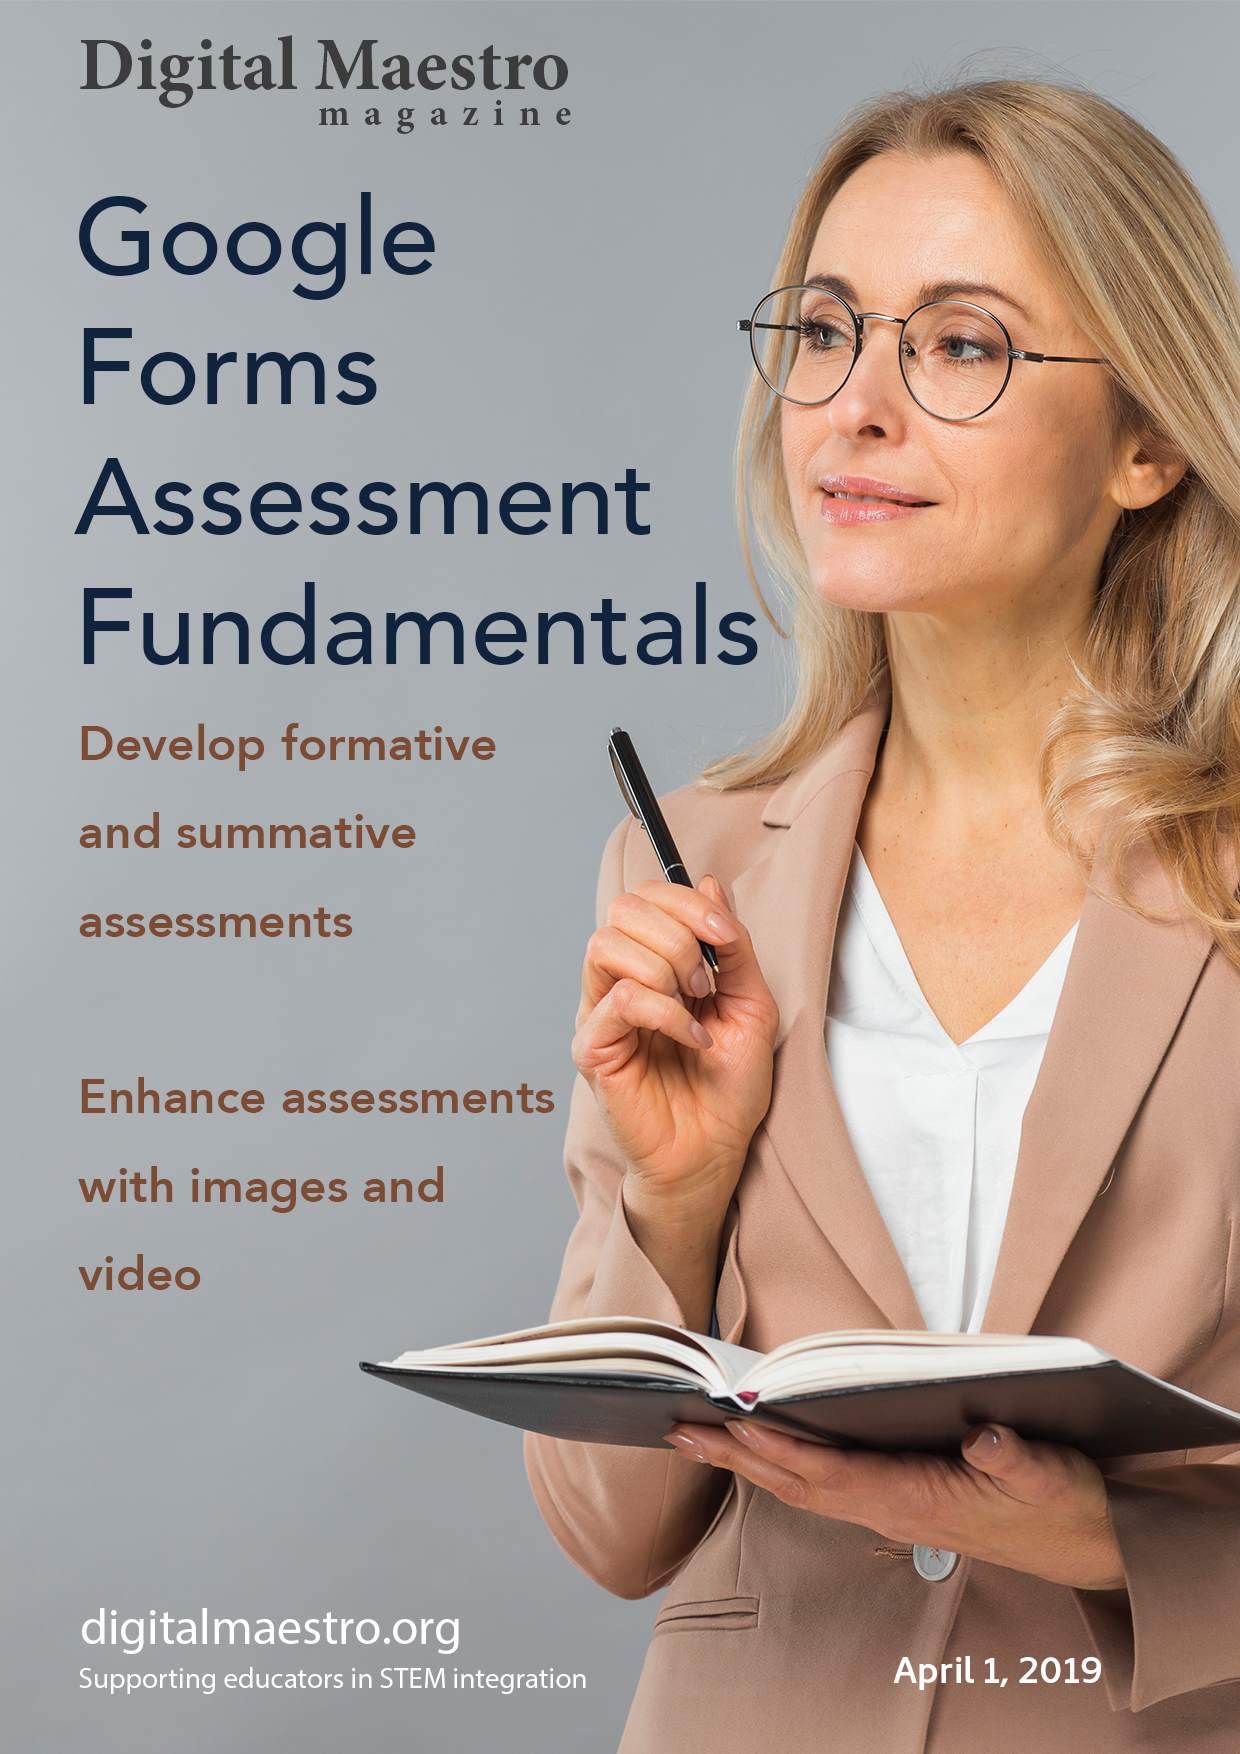 Google Forms Assessment Fundamentals - Learn how to create basic assessments with Google Forms. Use student feedback to support students. Use validation to help grade quizzes. Set minimum paragraph length for student responses.Download a free sample